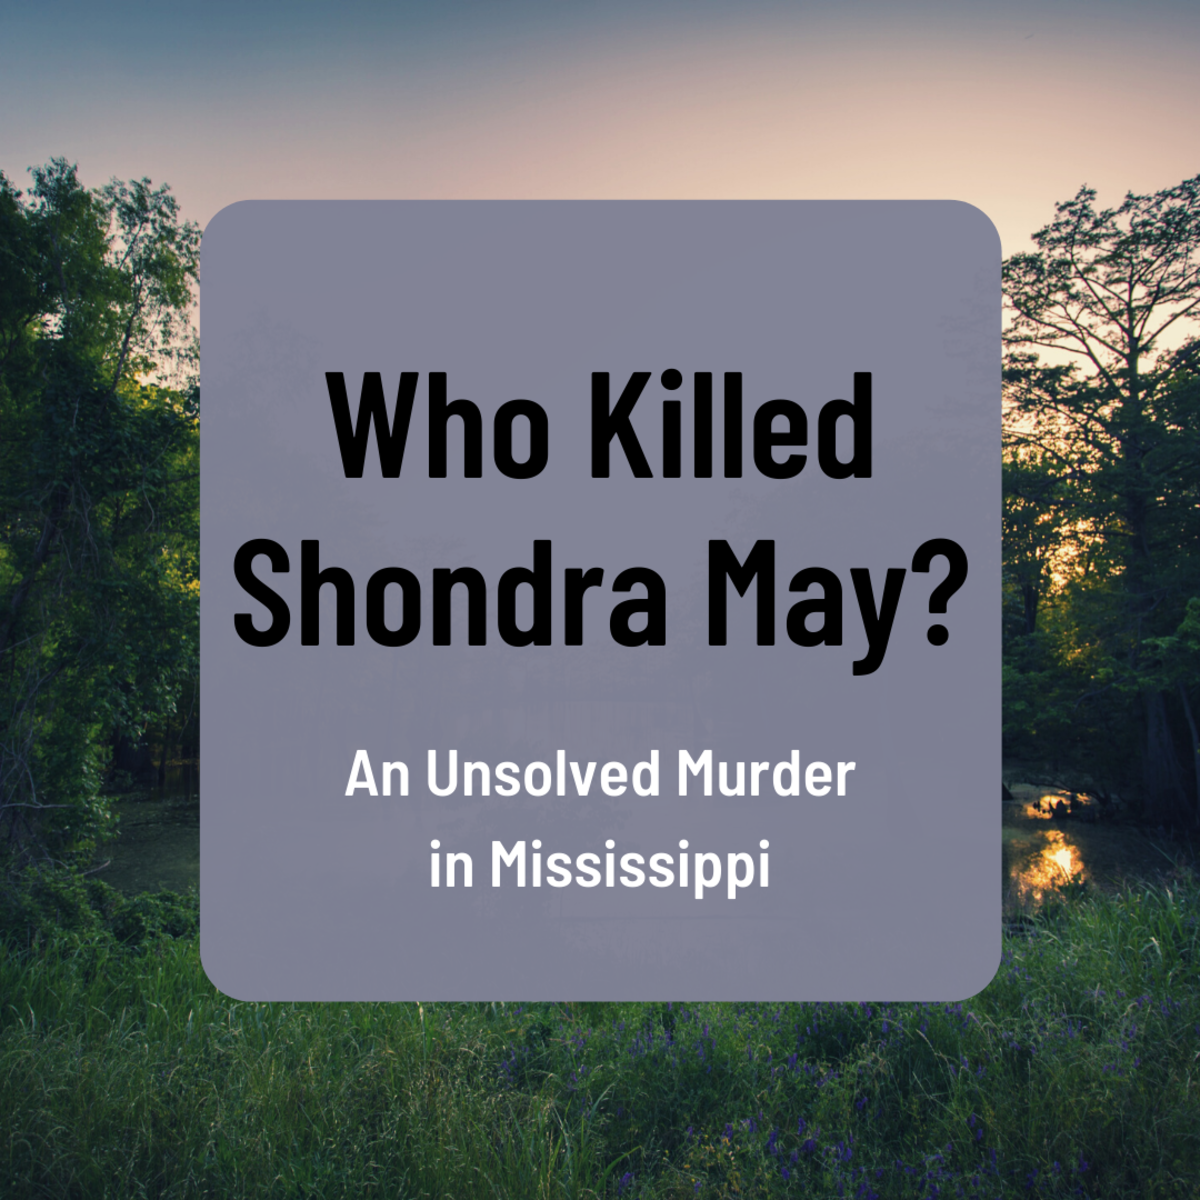 Learn about the unsolved case of Shondra May, a Mississippi girl who disappeared in 1986.